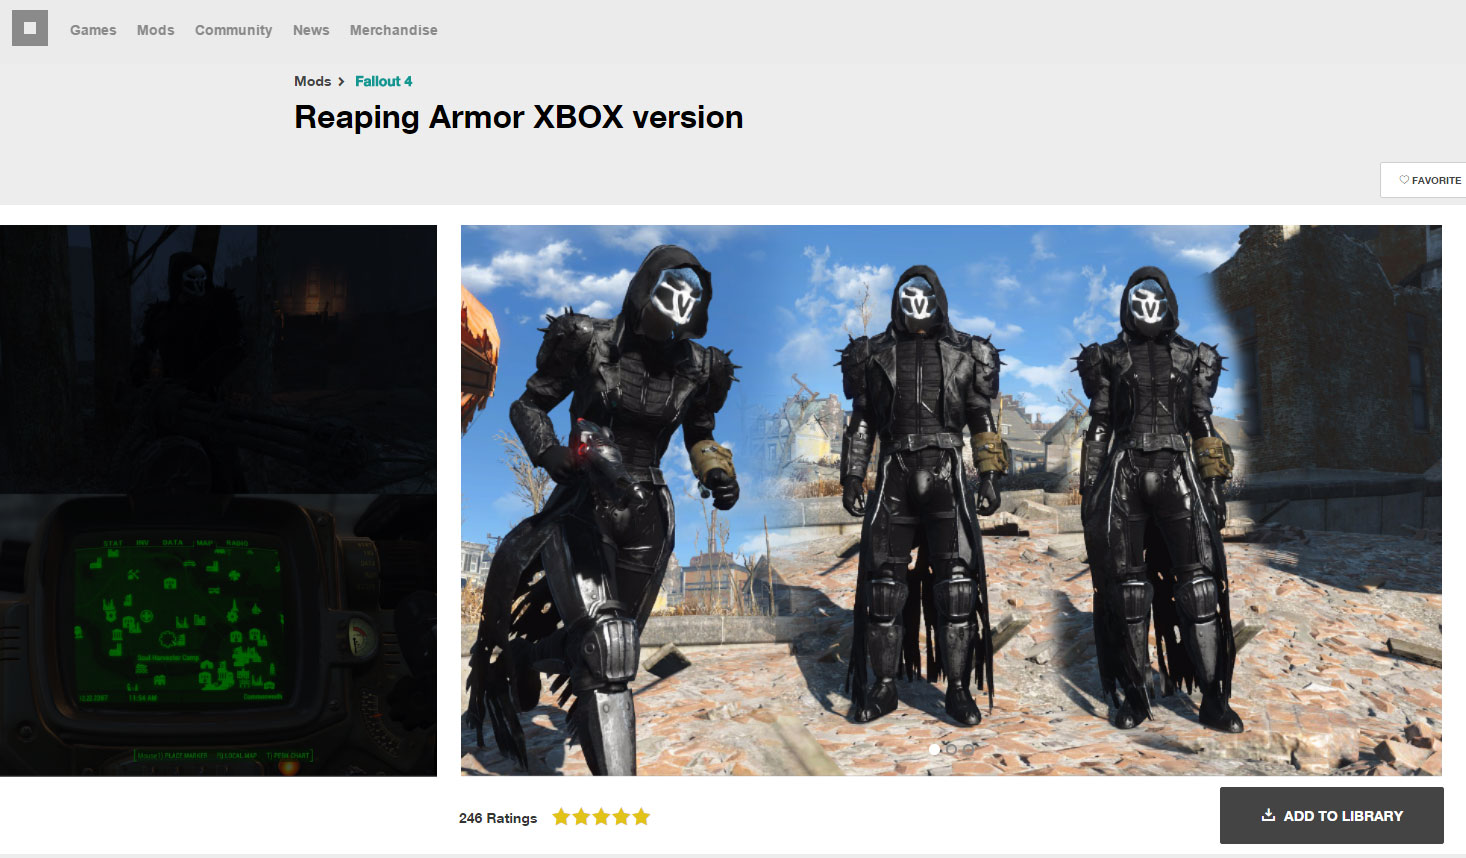 Fallout 4 Mod Reaping Armor Overwatch Know Your Meme